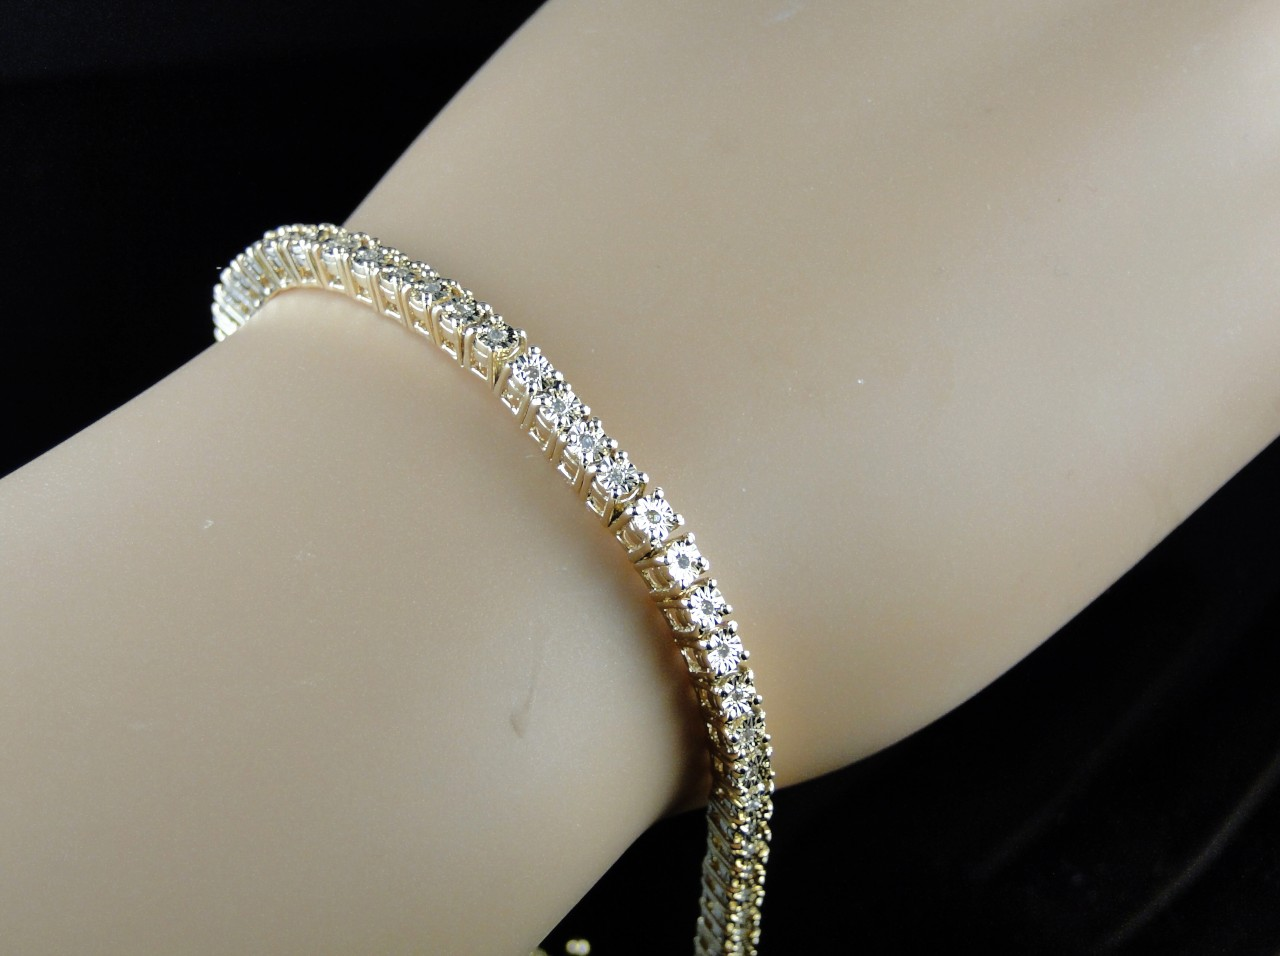 Unique Vintage Luxury Collection Steal Prices Single Row 0 25 Carat Genuine Diamond With 10k White Gold Or Yellow Finish Bracelet